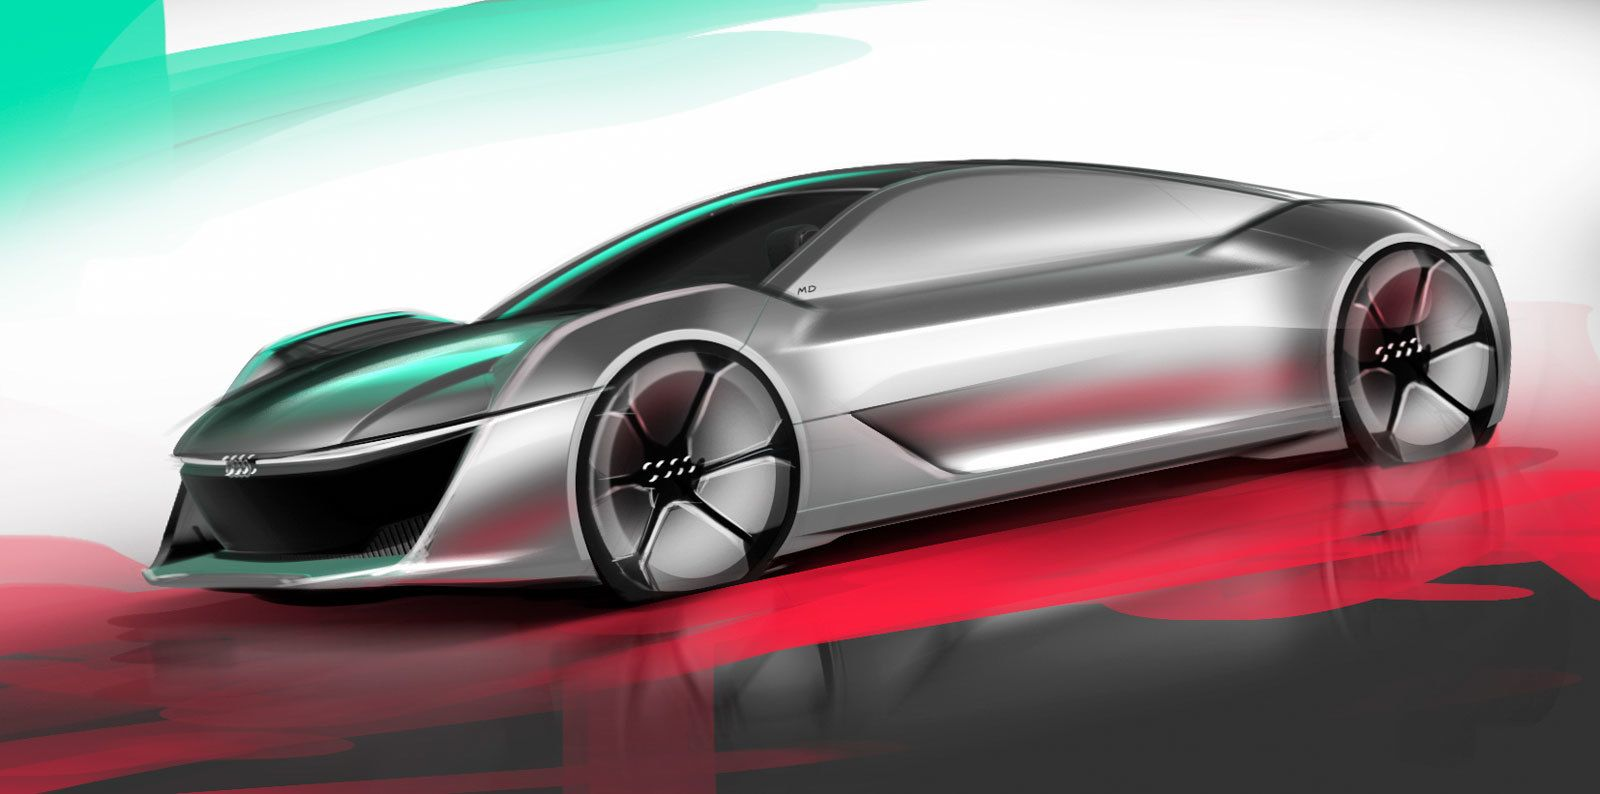 Last reminder: TODAY is the DEADLINE for the SPD Master in Car Design Scholarship contest.  Send your portfolio to info@scuoladesign.com - you can win a full scholarship worth over 16,000 Euros!